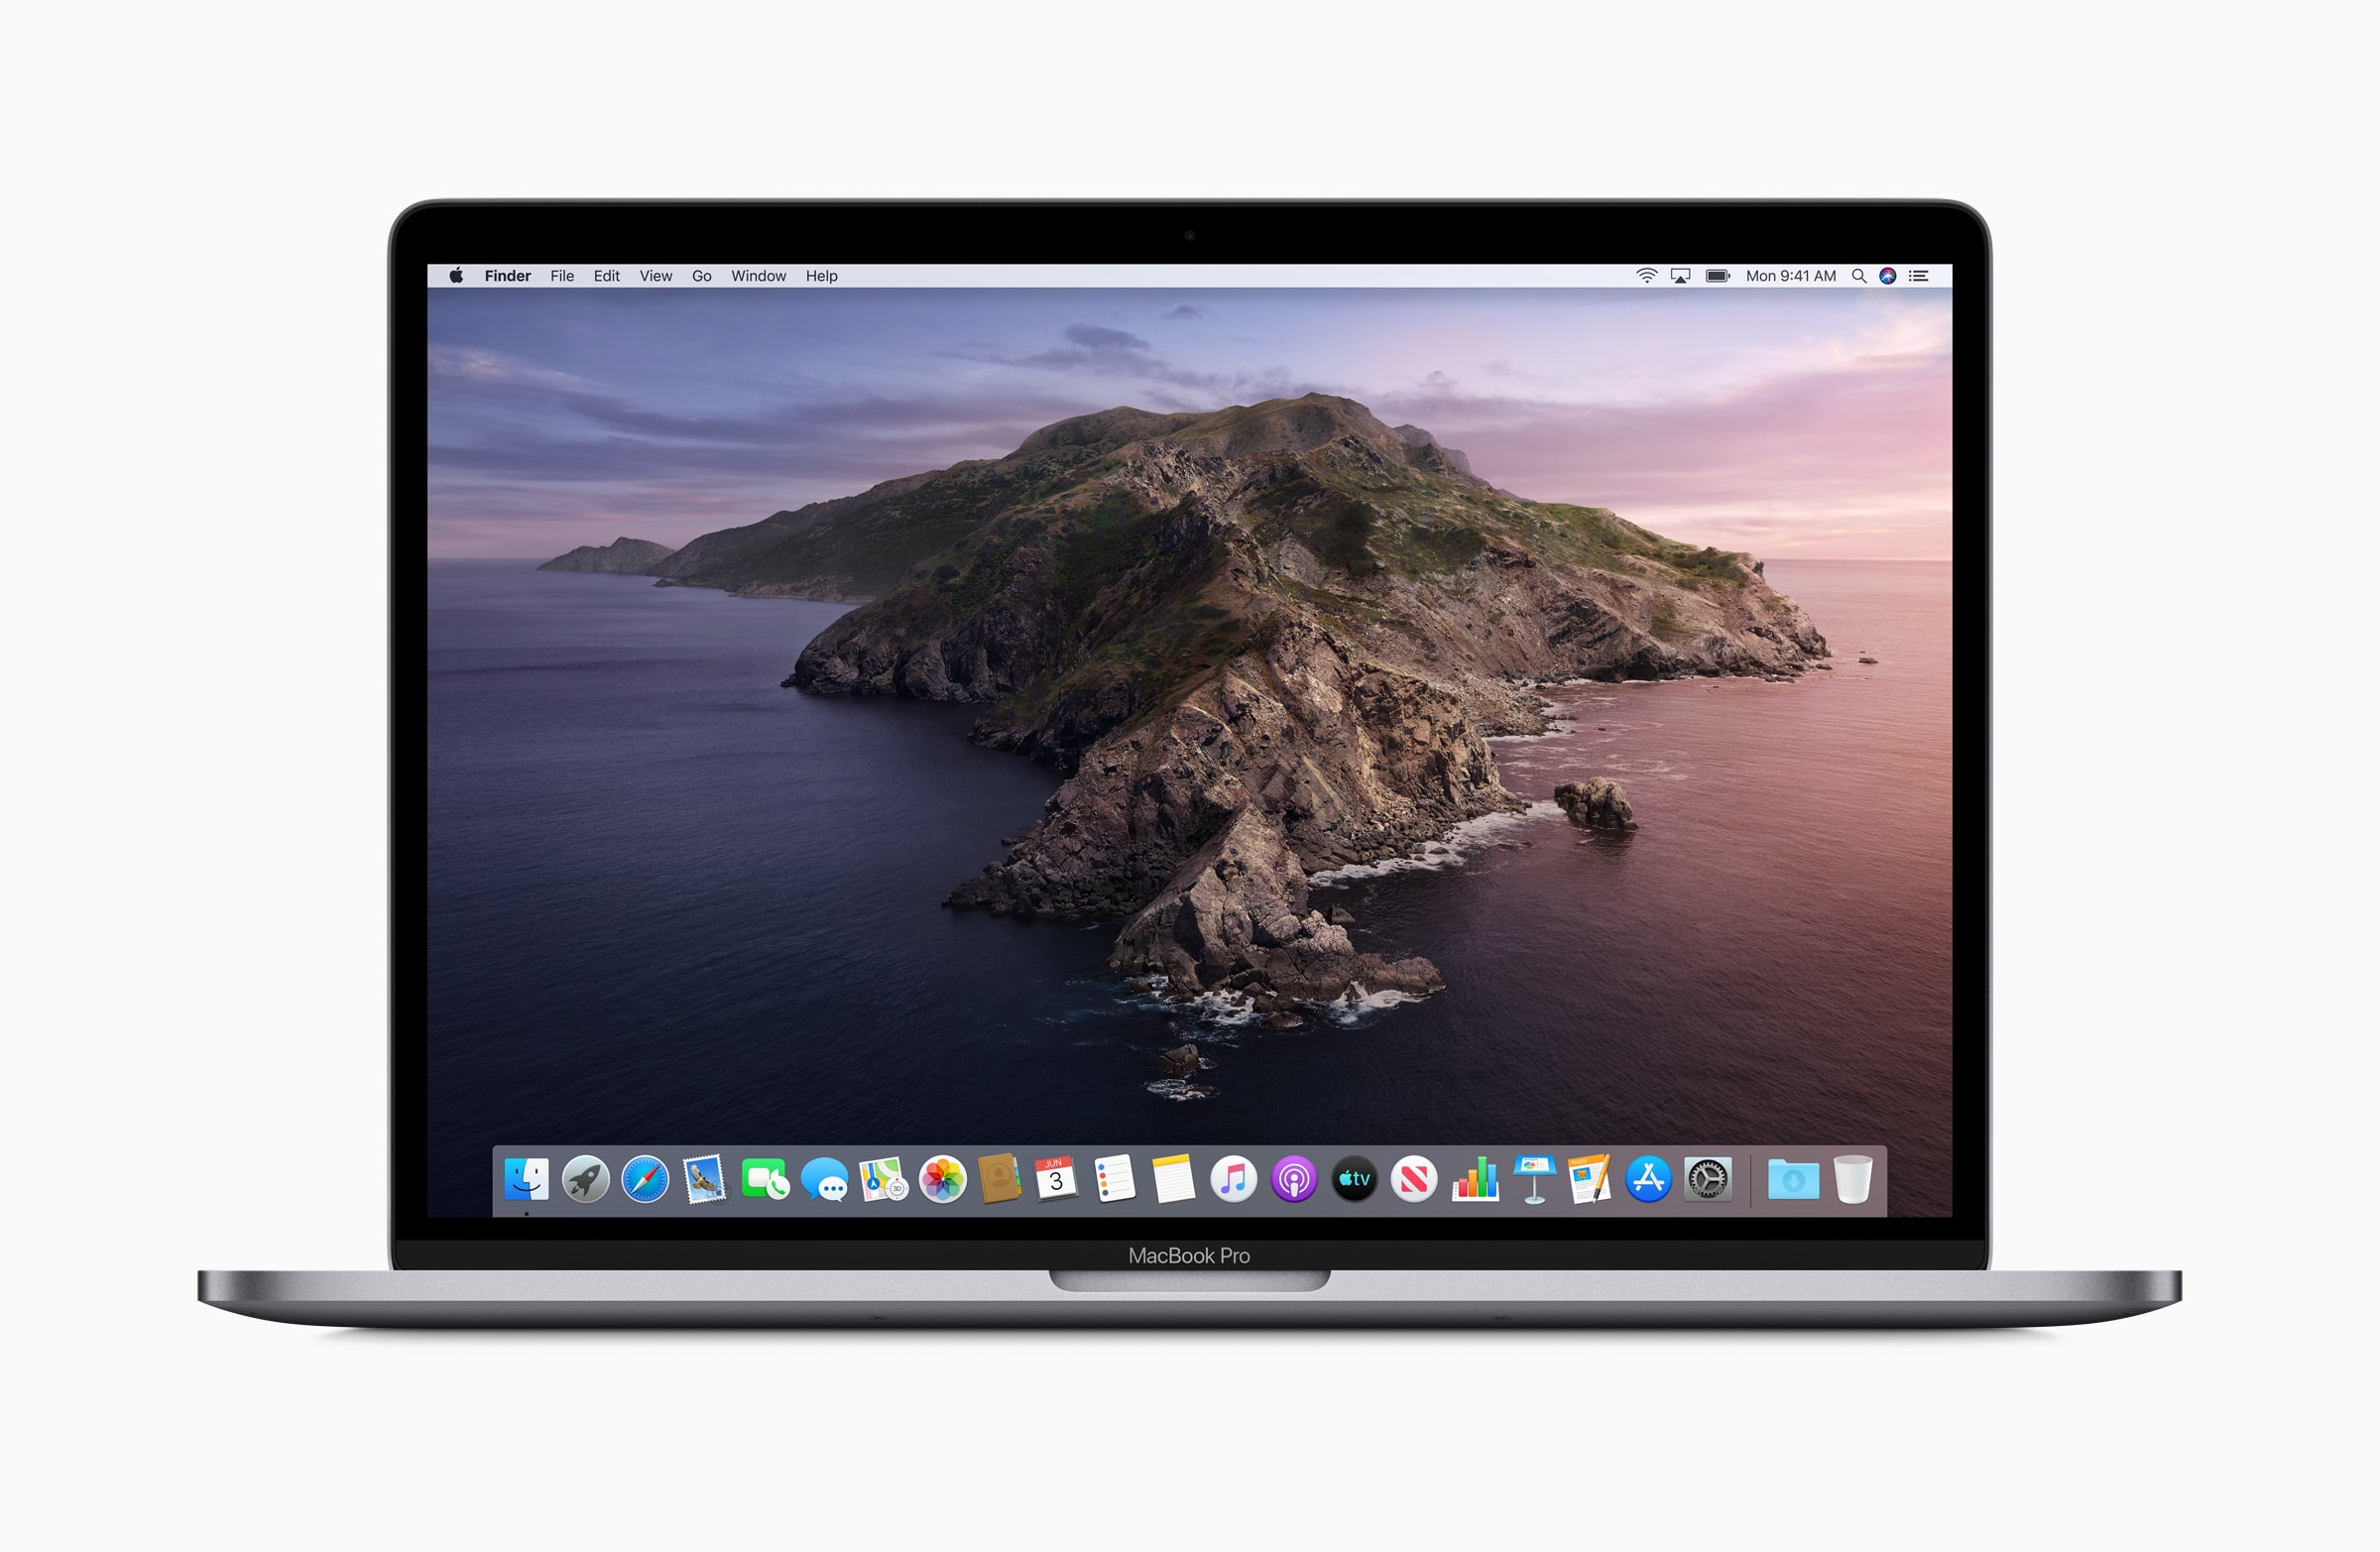 macOS Catalina is coming this fall